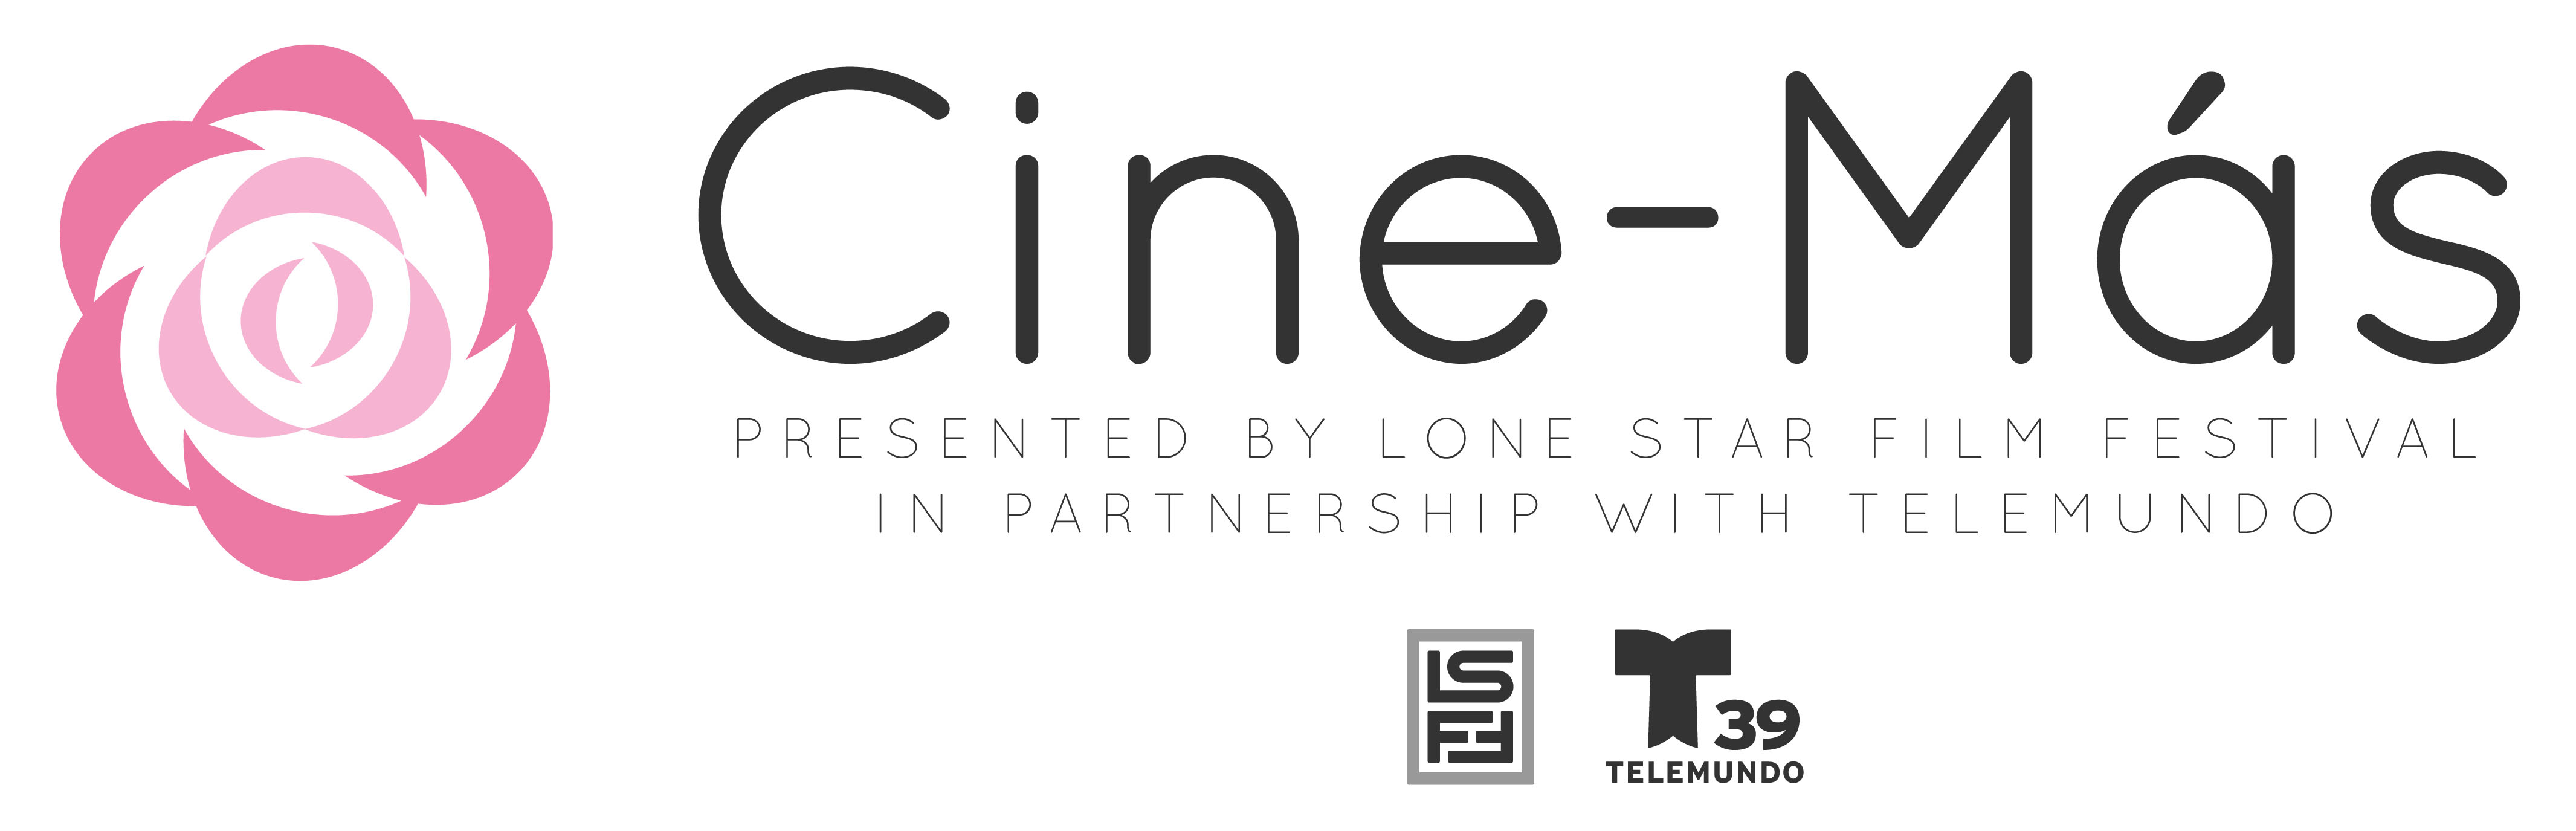 The Lone Star Film Festival celebrates Latin cinema with a new initiative called Cine-Más! This new portion of the festival features films that share the art and cultures of the Latin and Hispanic people. Photo: Cine-Más logo